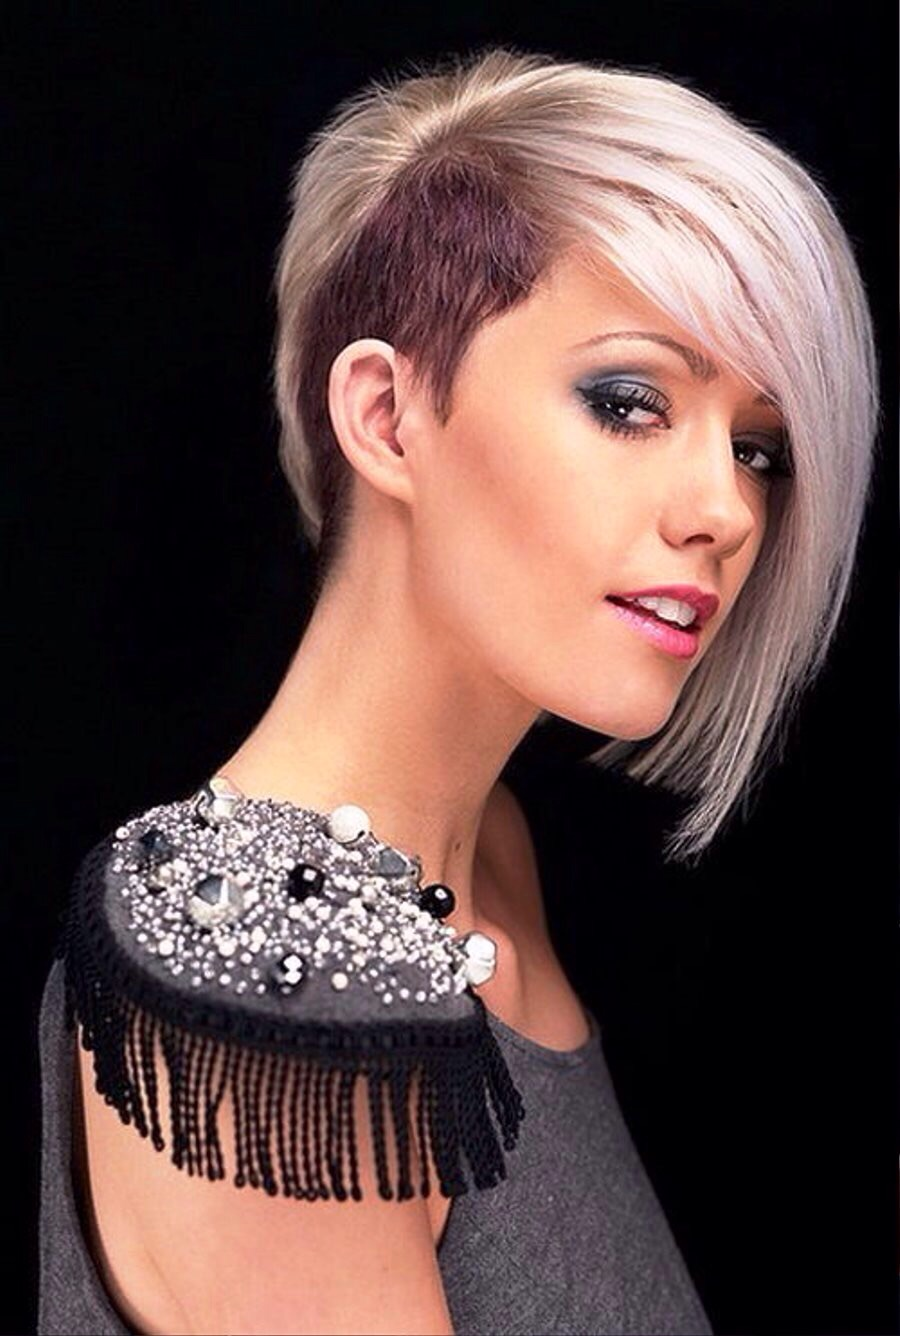 The most simple and stylish hairstyles on short hair 2016. Photo №5